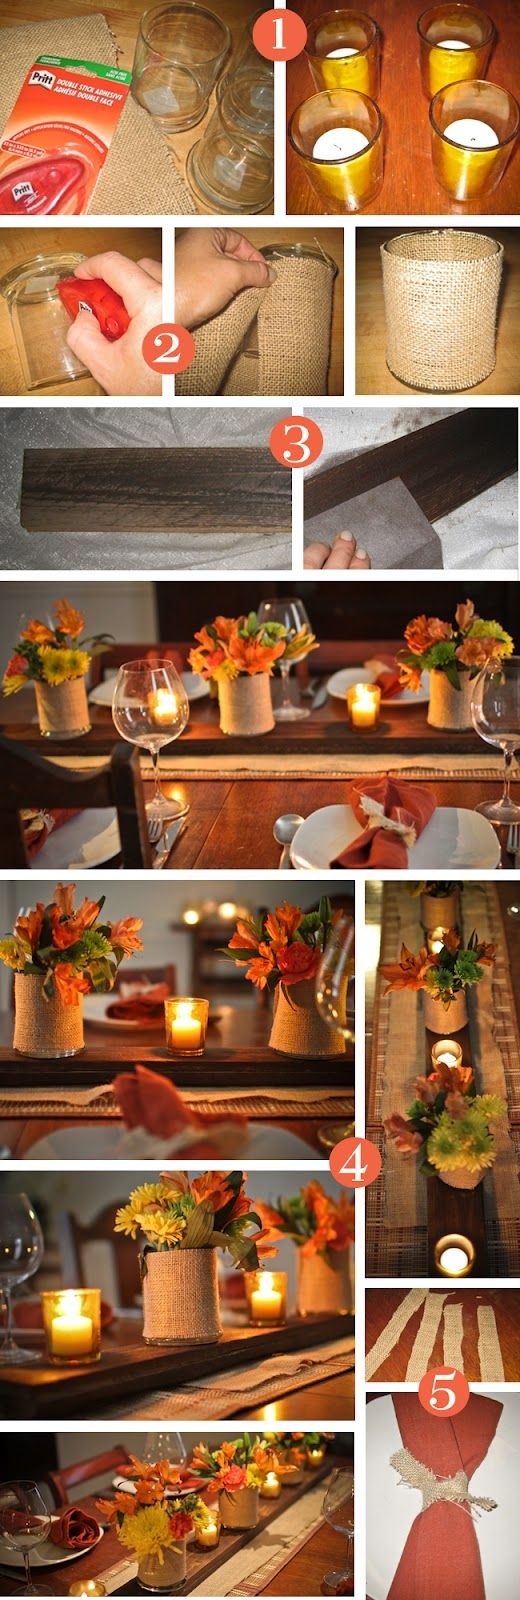 Diy thanksgiving paper decor - Find This Pin And More On Just Diy Thanksgiving Fall Decor